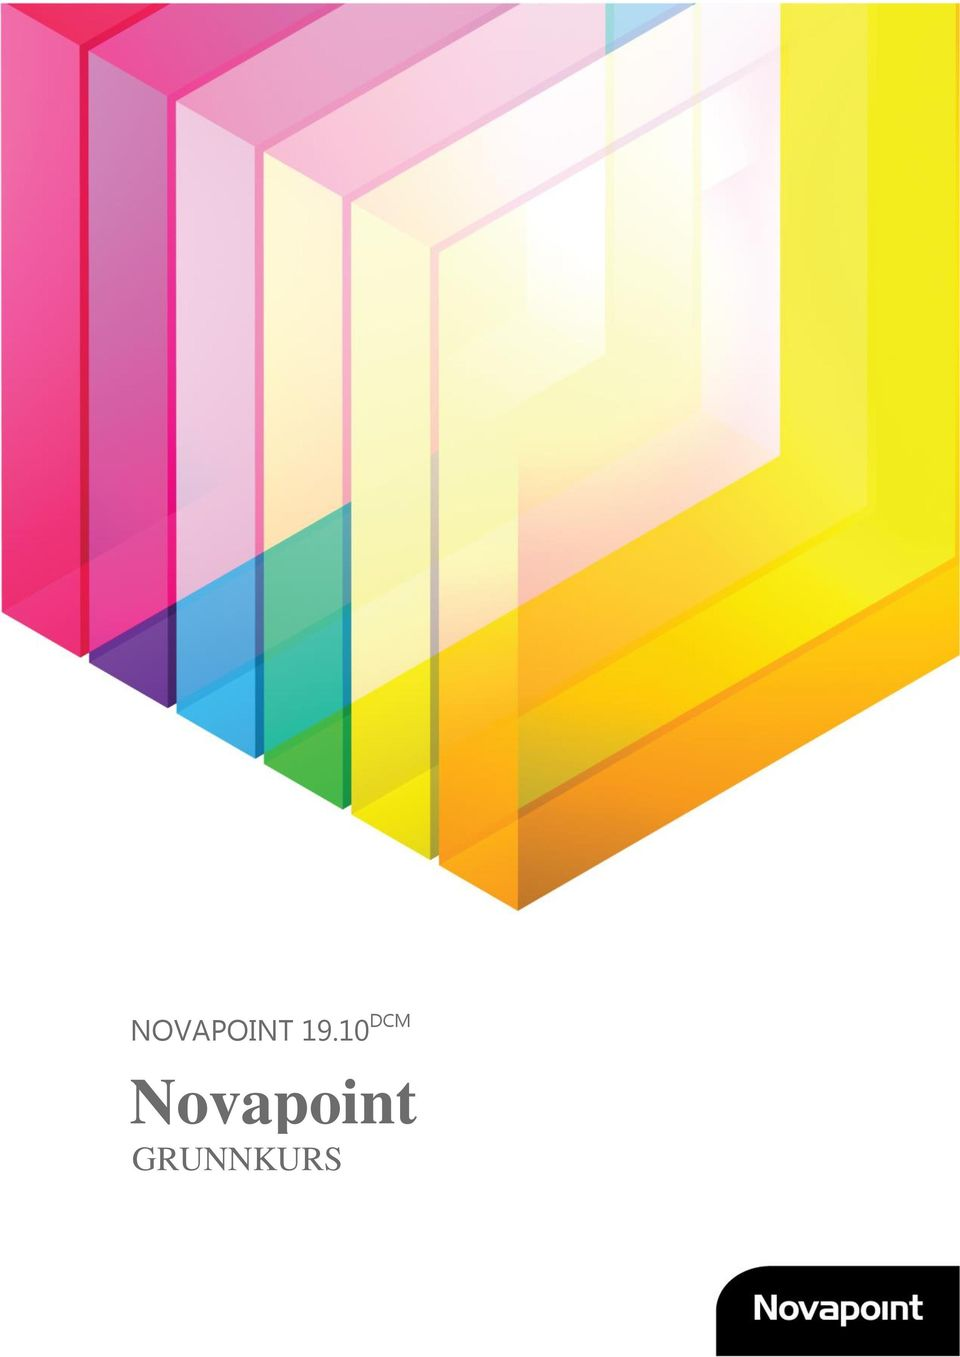 Novapoint